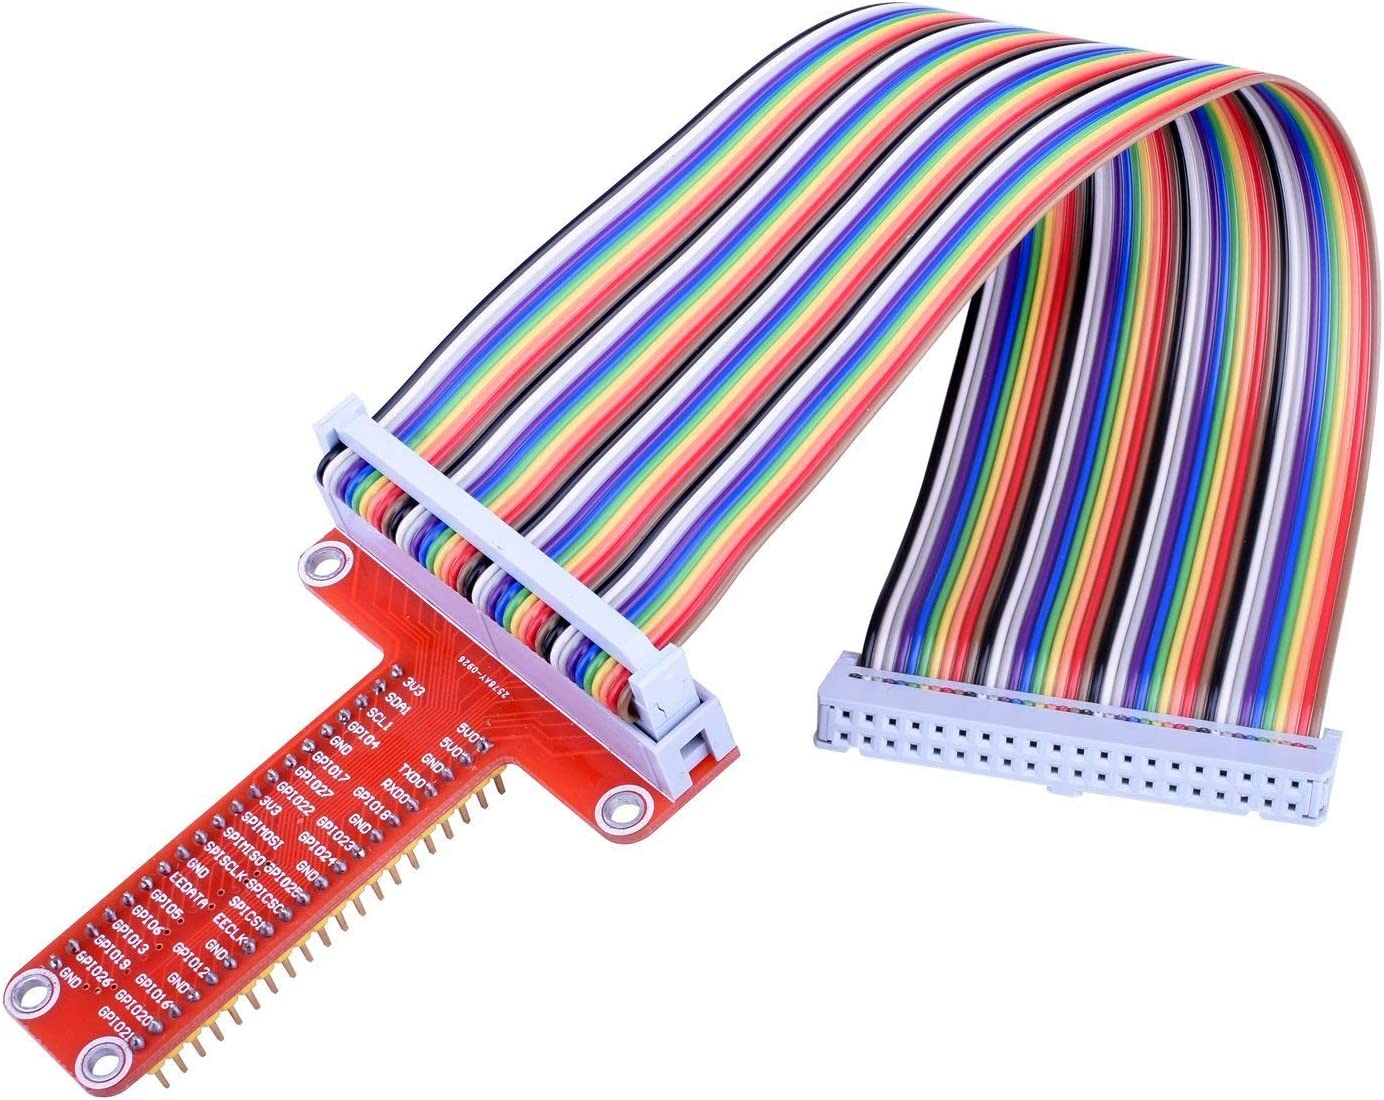 Assembled T Type GPIO Adapter 20cm FC40 40pin Flat Ribbon Cable for Raspberry BoMiVa Ribbon Cable RPi GPIO Breakout Expansion Board